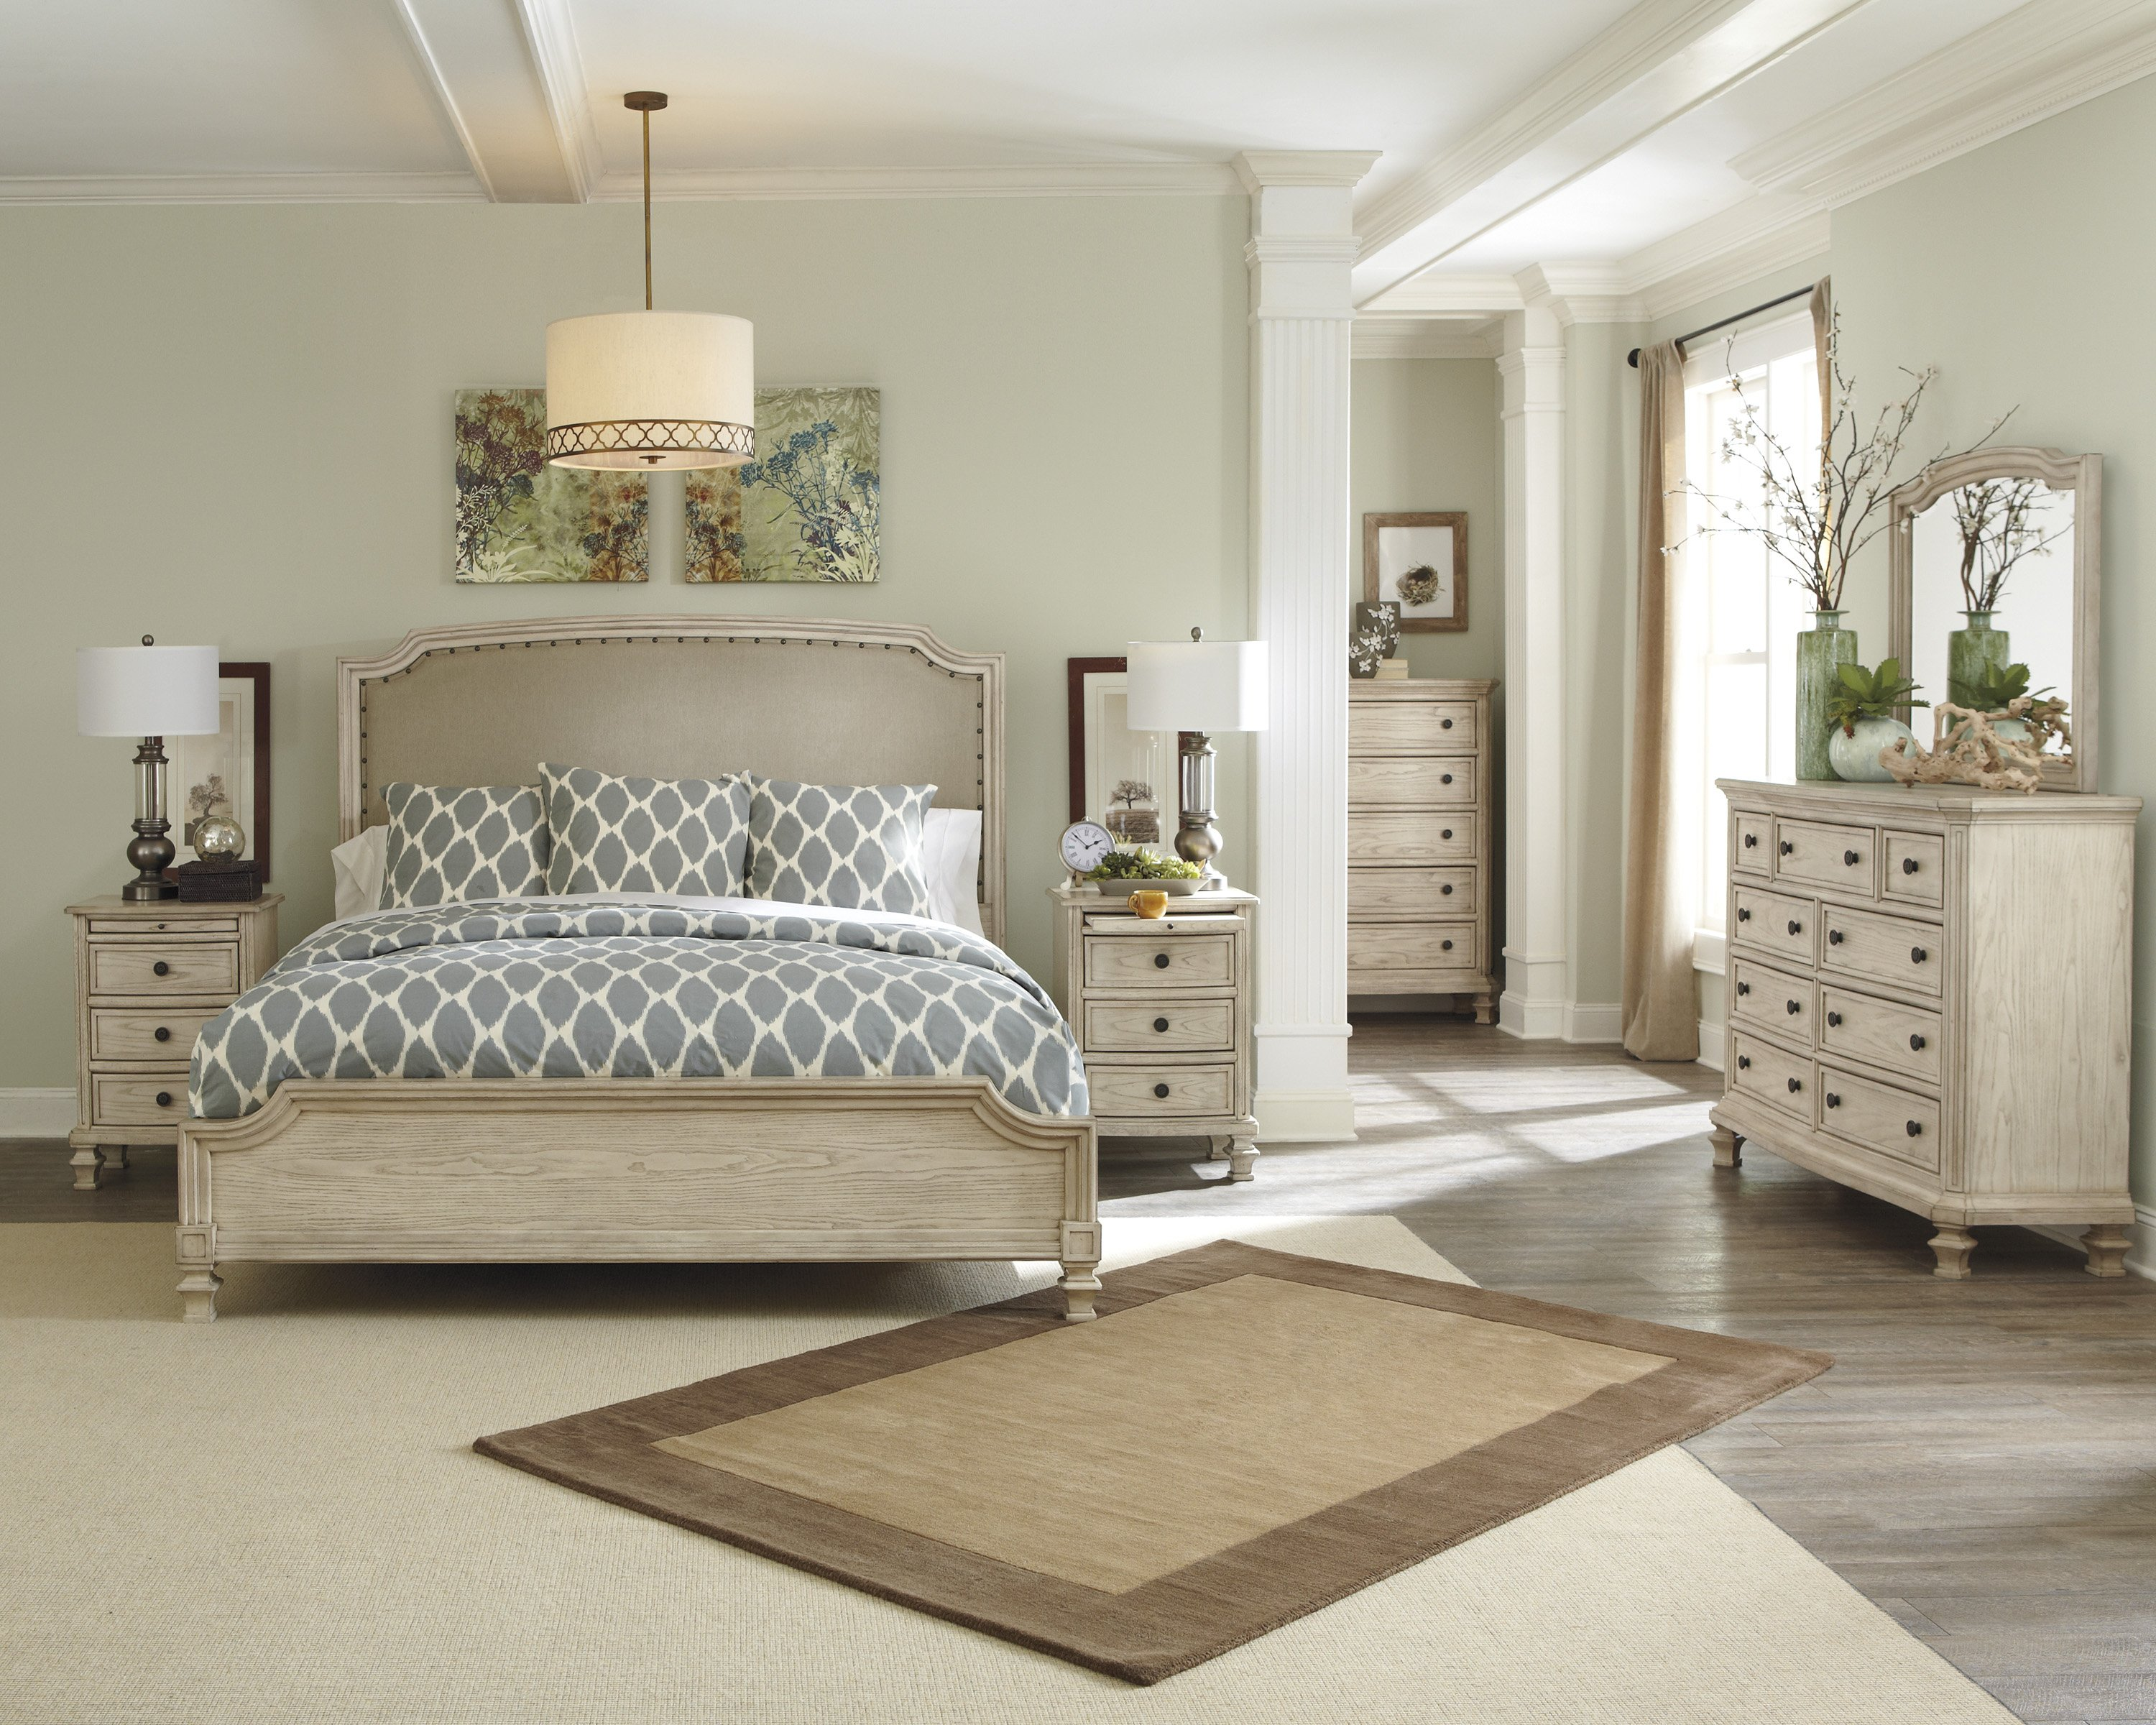 bedroom set ideas 15 top white bedroom furniture might be suitable for your 10629